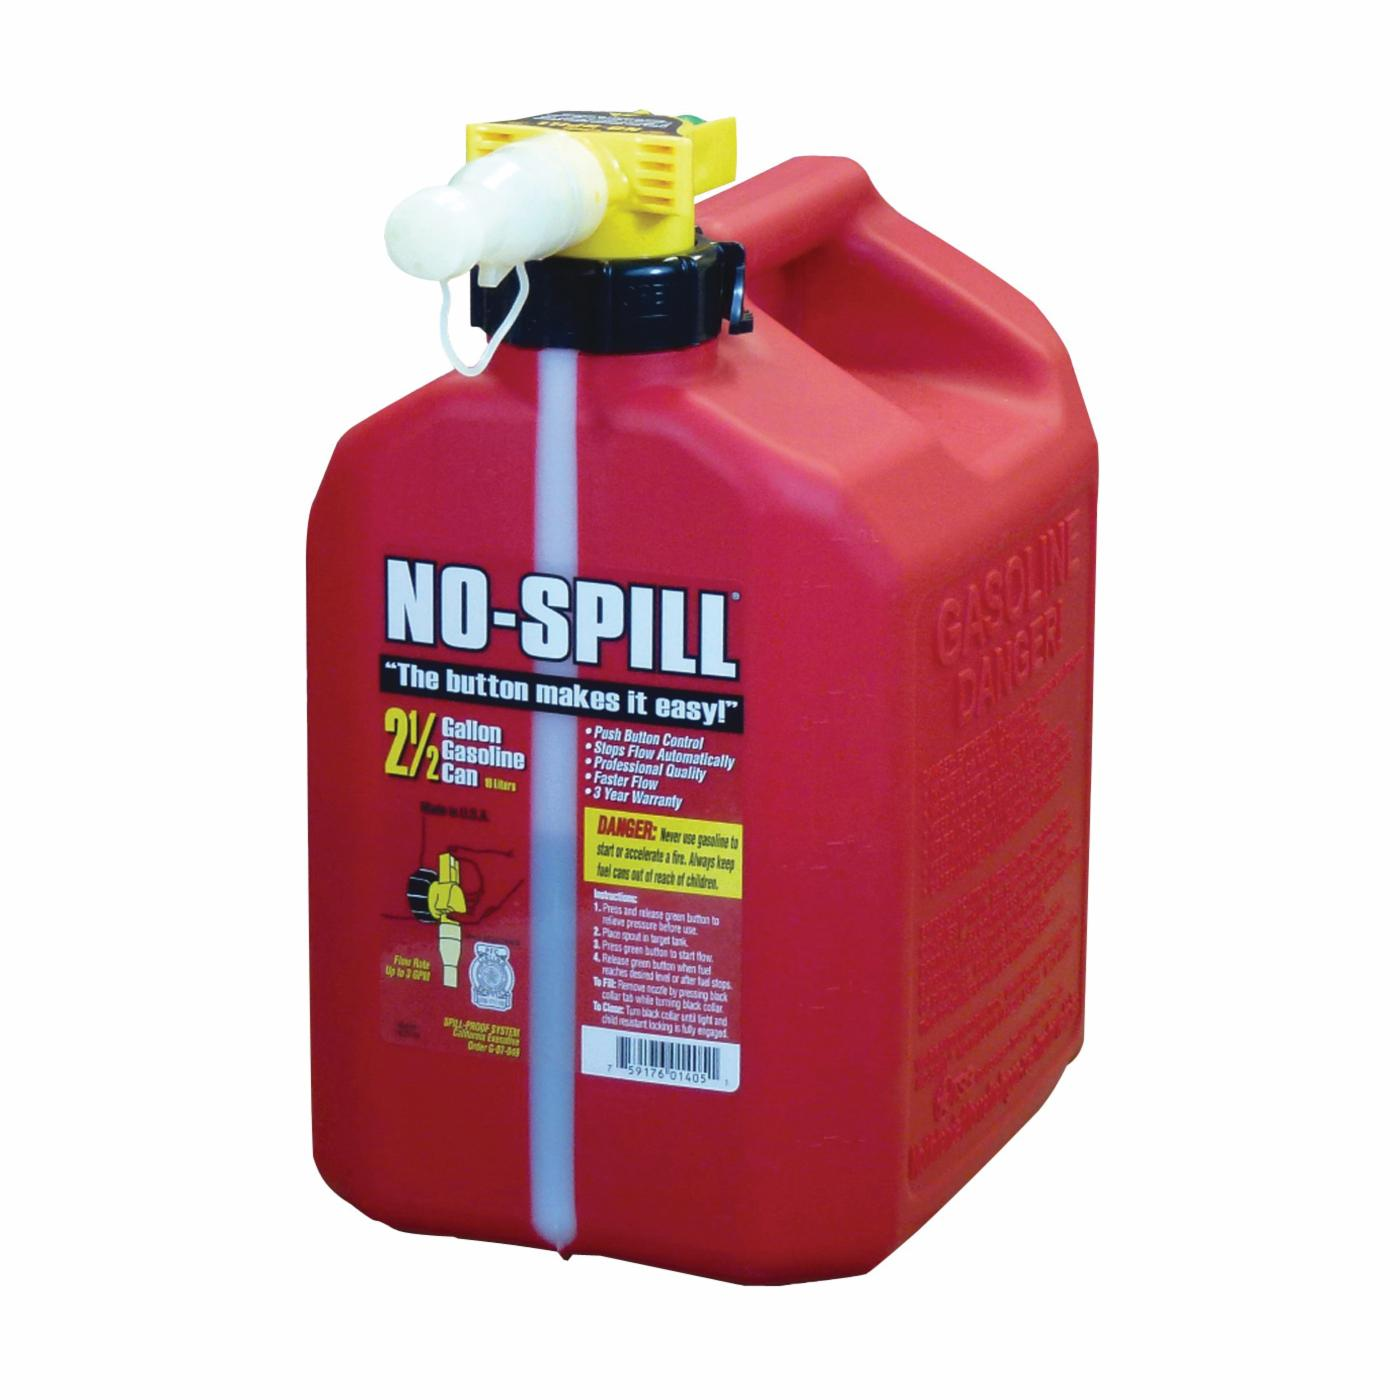 Picture of No-Spill 1405 Gas Can, 2.5 gal Capacity, Plastic, Red